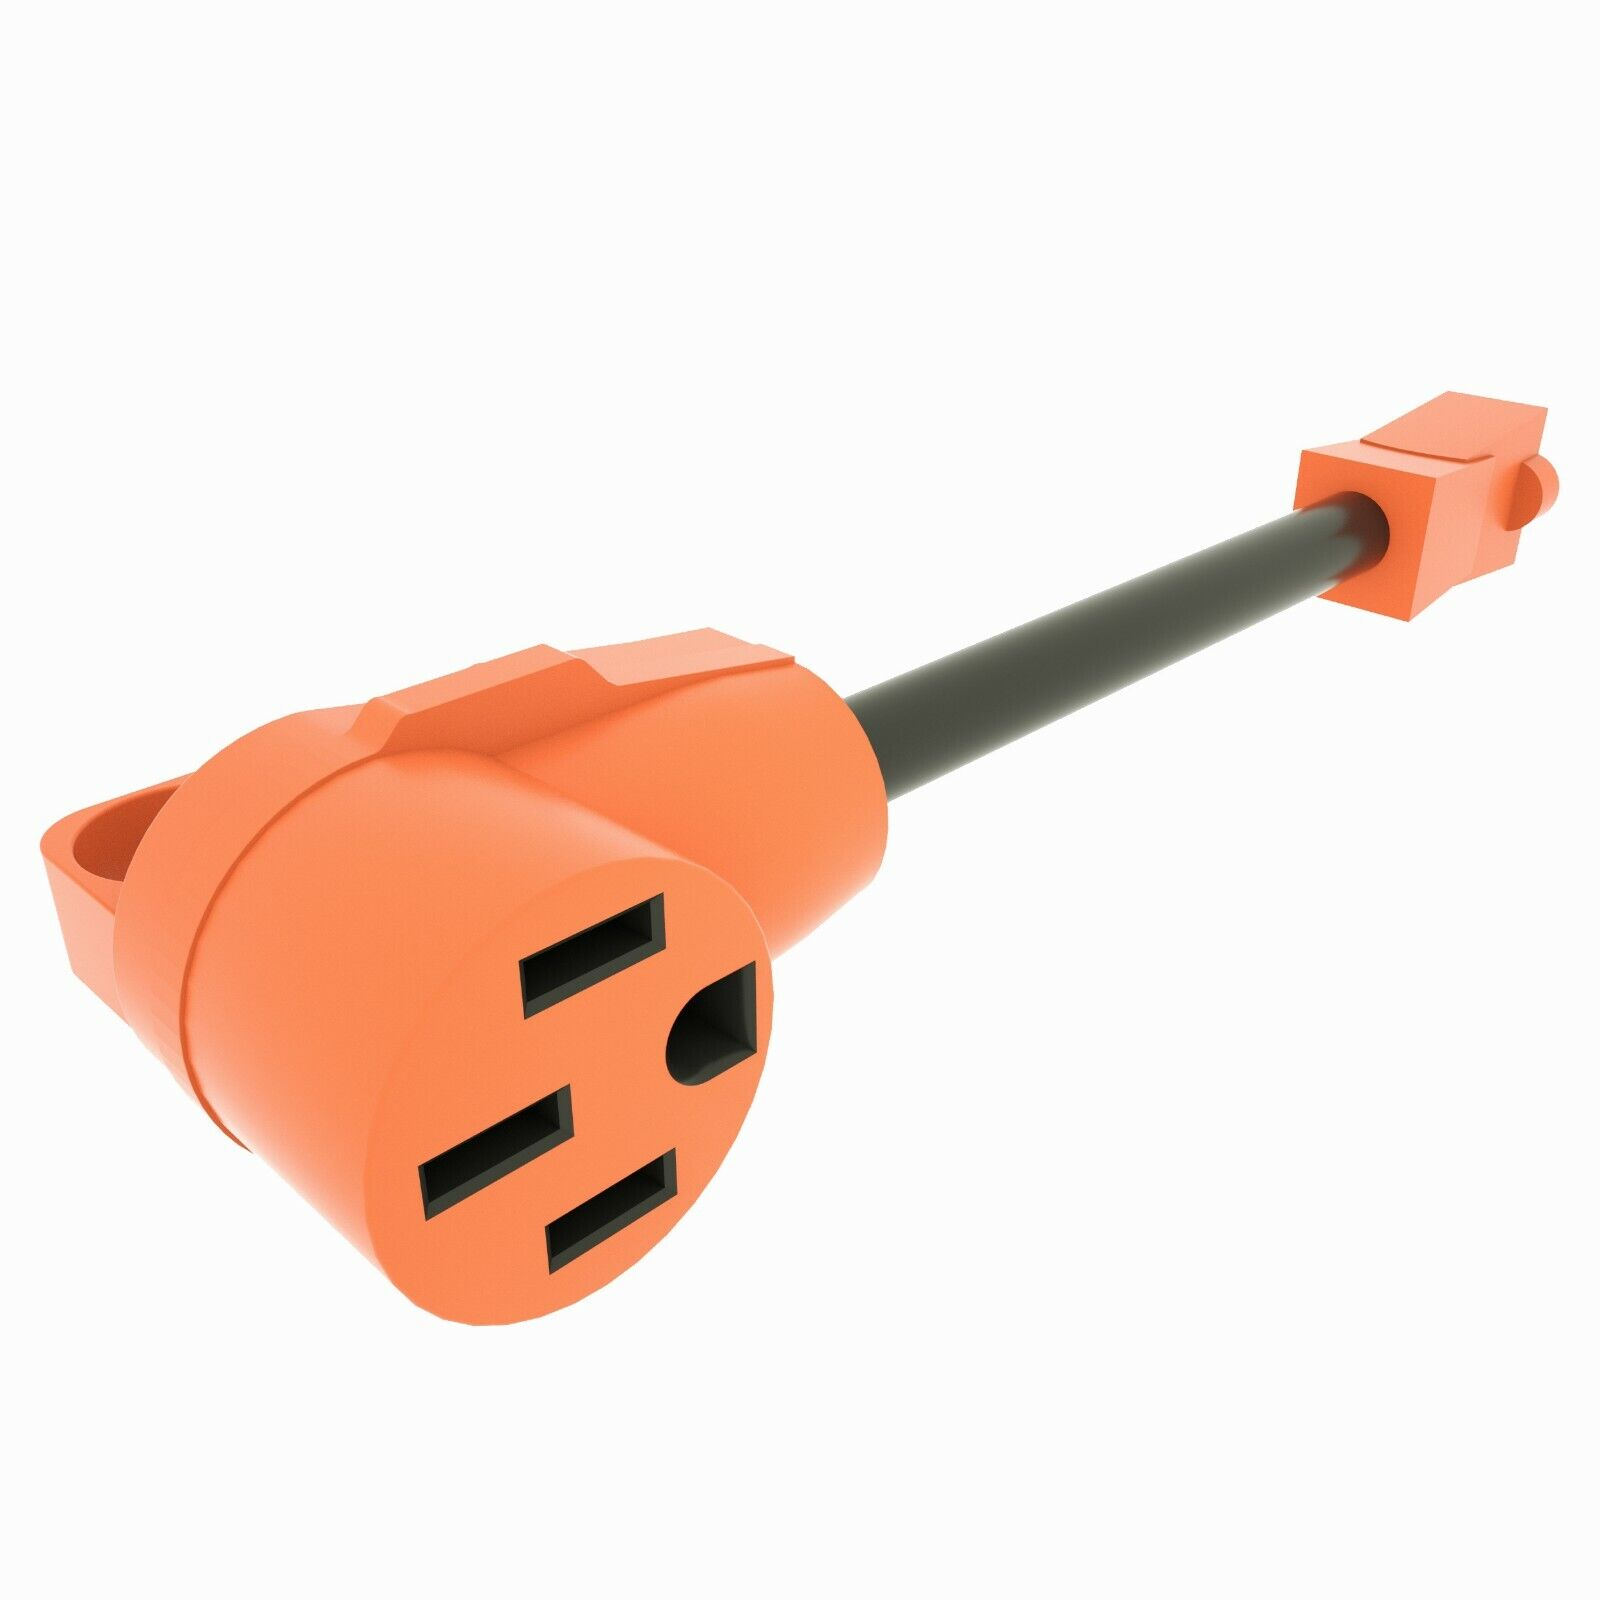 15Amp Male to 50 Amp Female with Handle Dogbone RV/Electrical Adapter eBay Motors